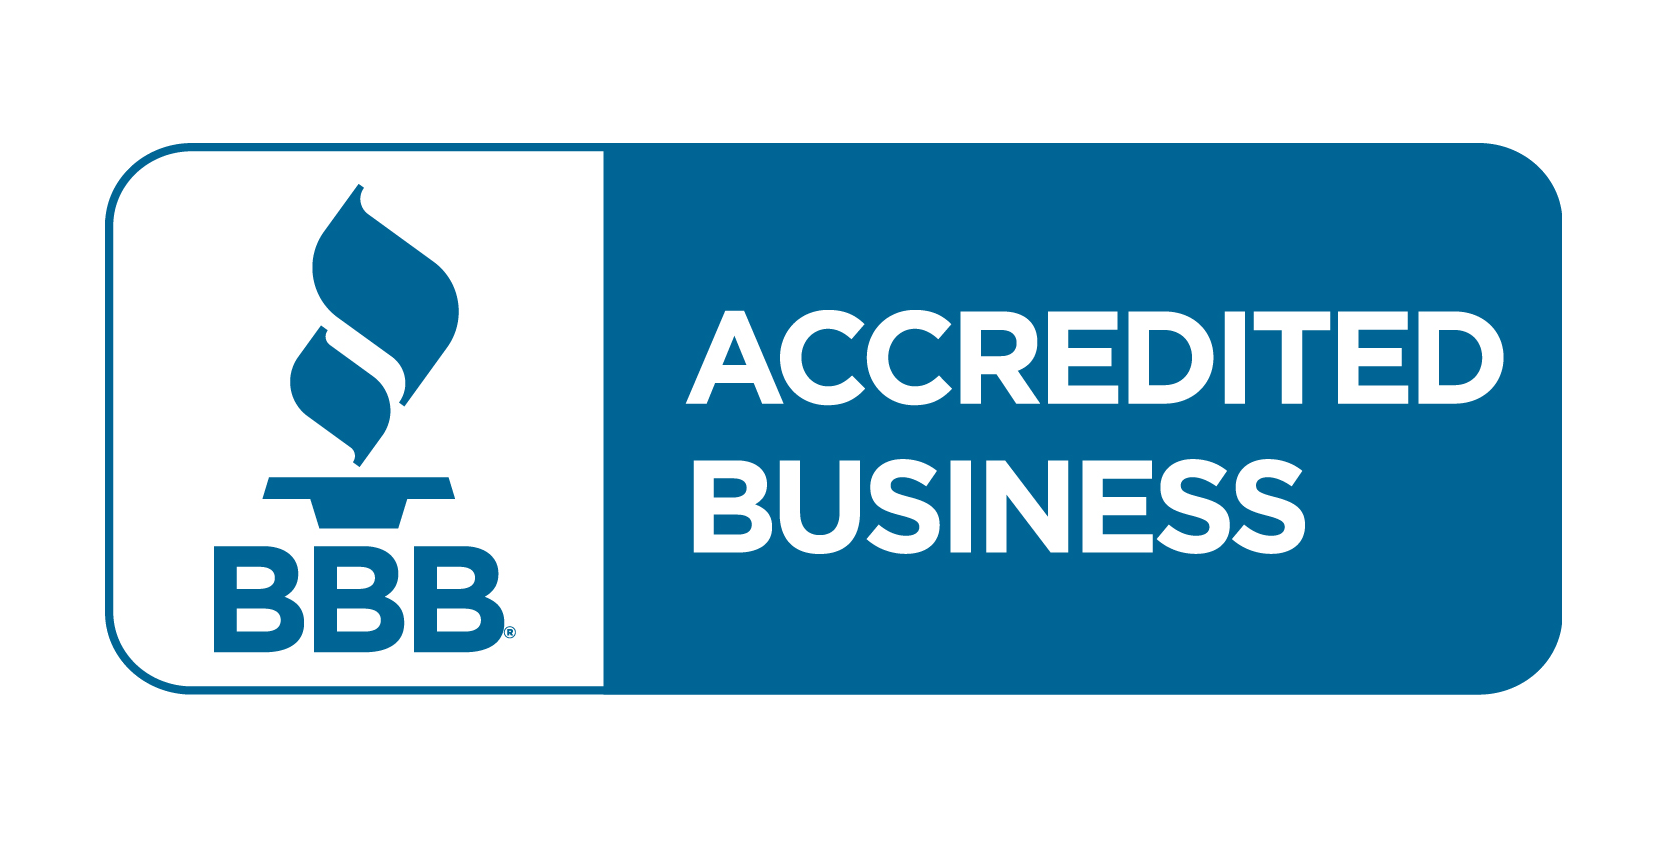 KECdesign is BBB Accredited